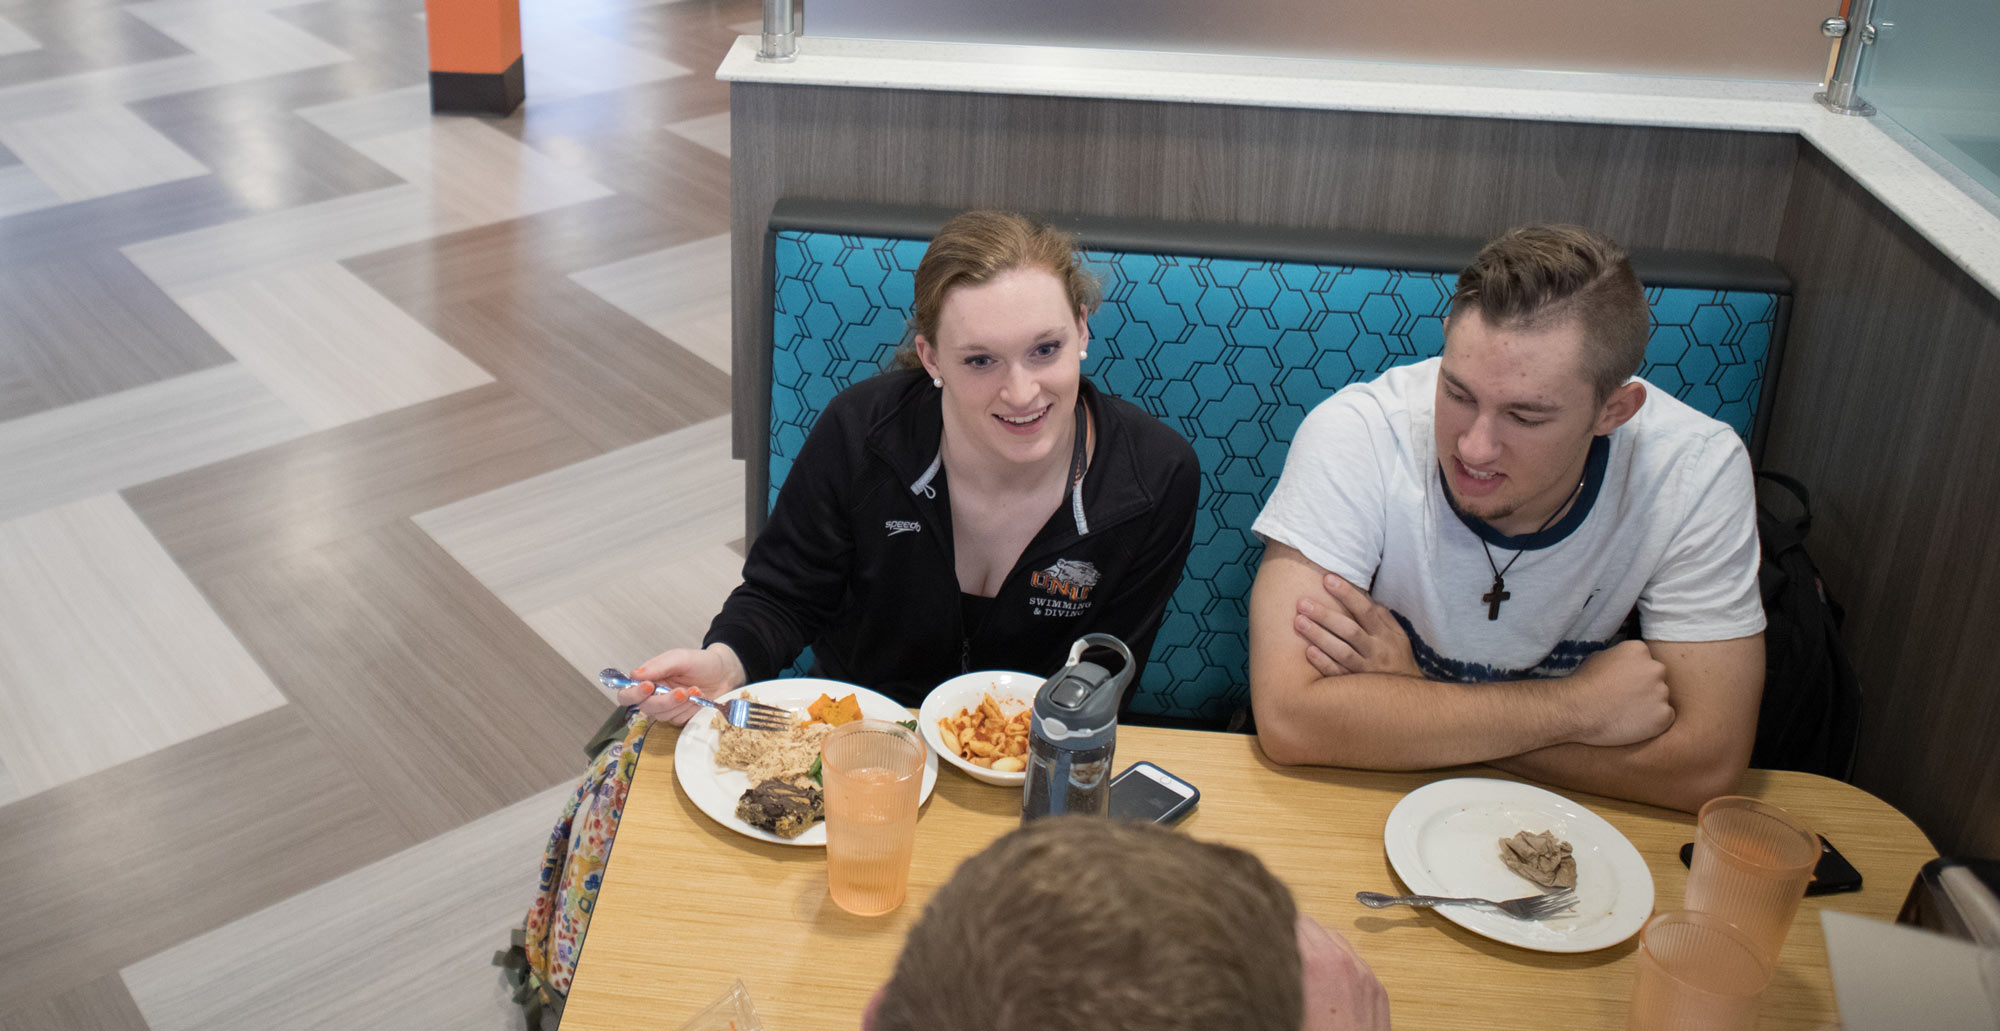 Freshmen Abby Leatherwood and Seth Darrah eat lunch in the dinning hall.